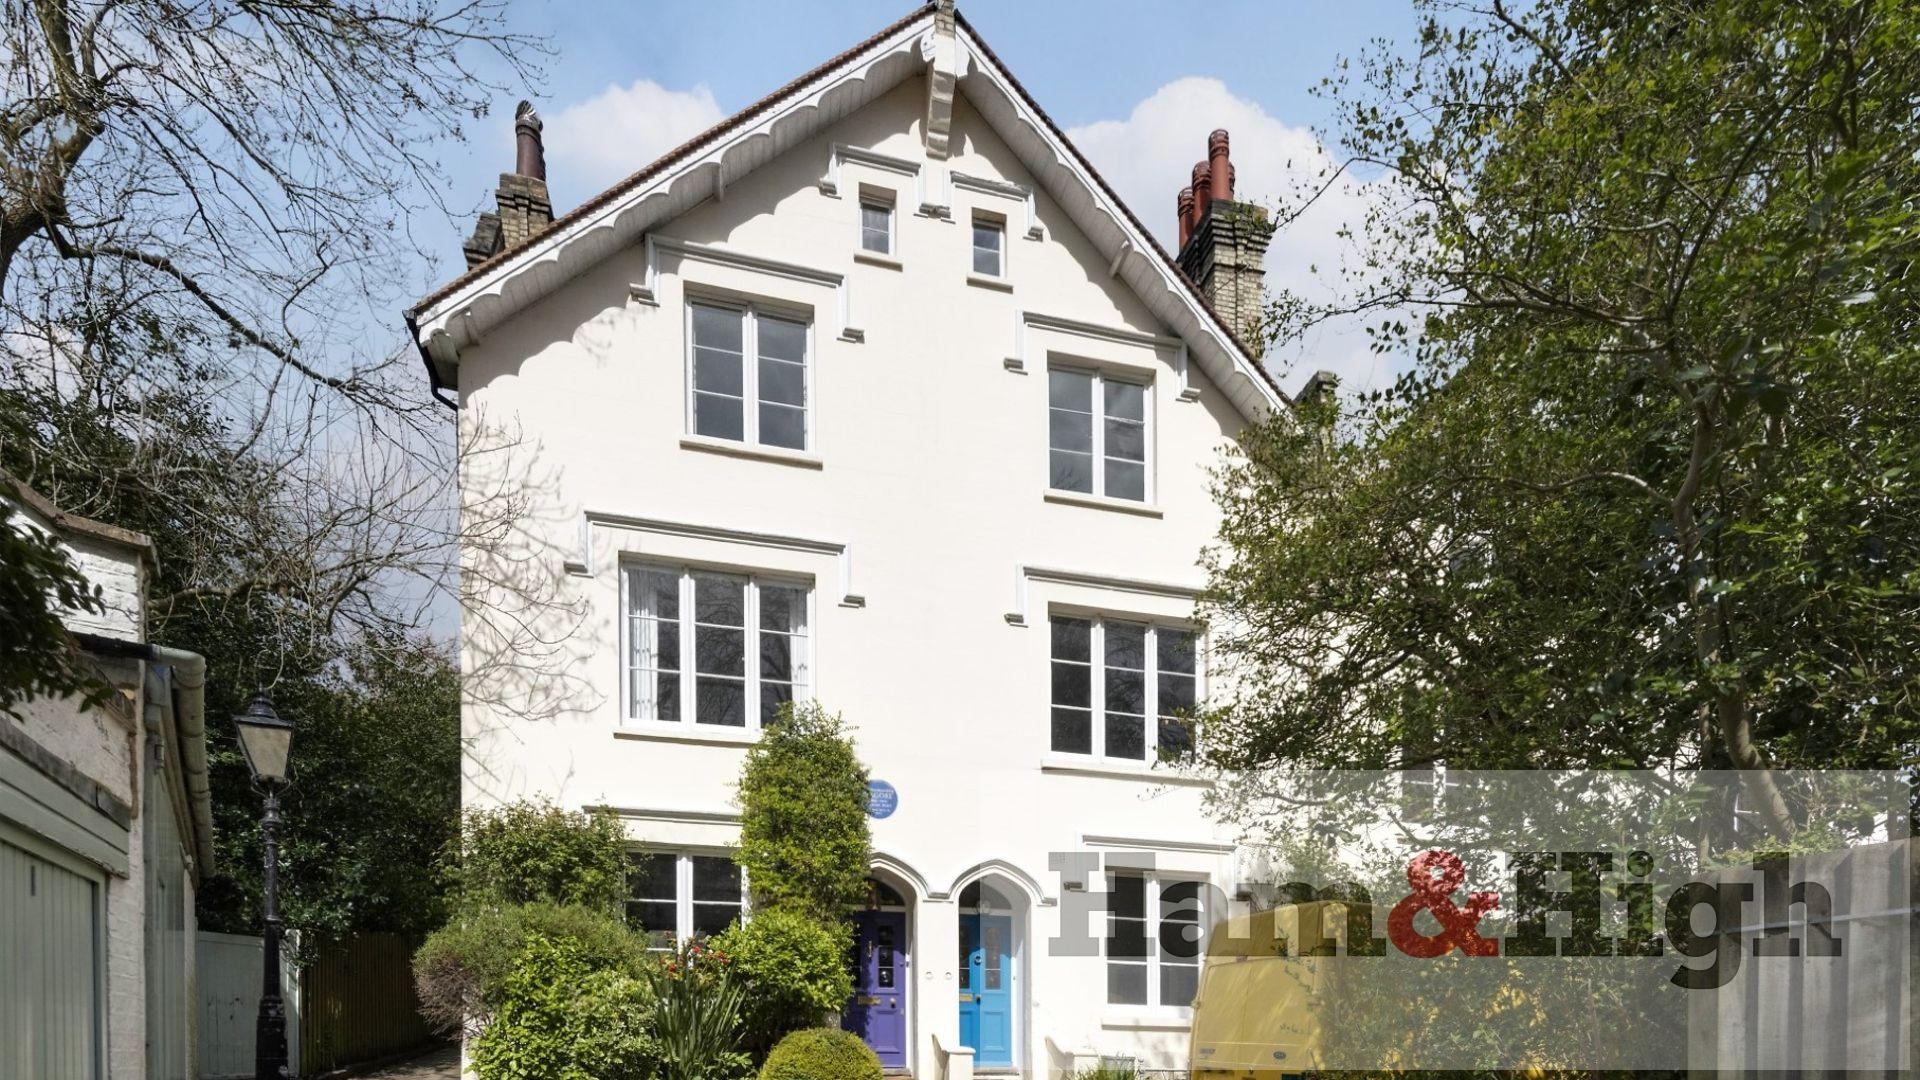 Rabindranath Tagore's Hampstead home on the market for £2.65m